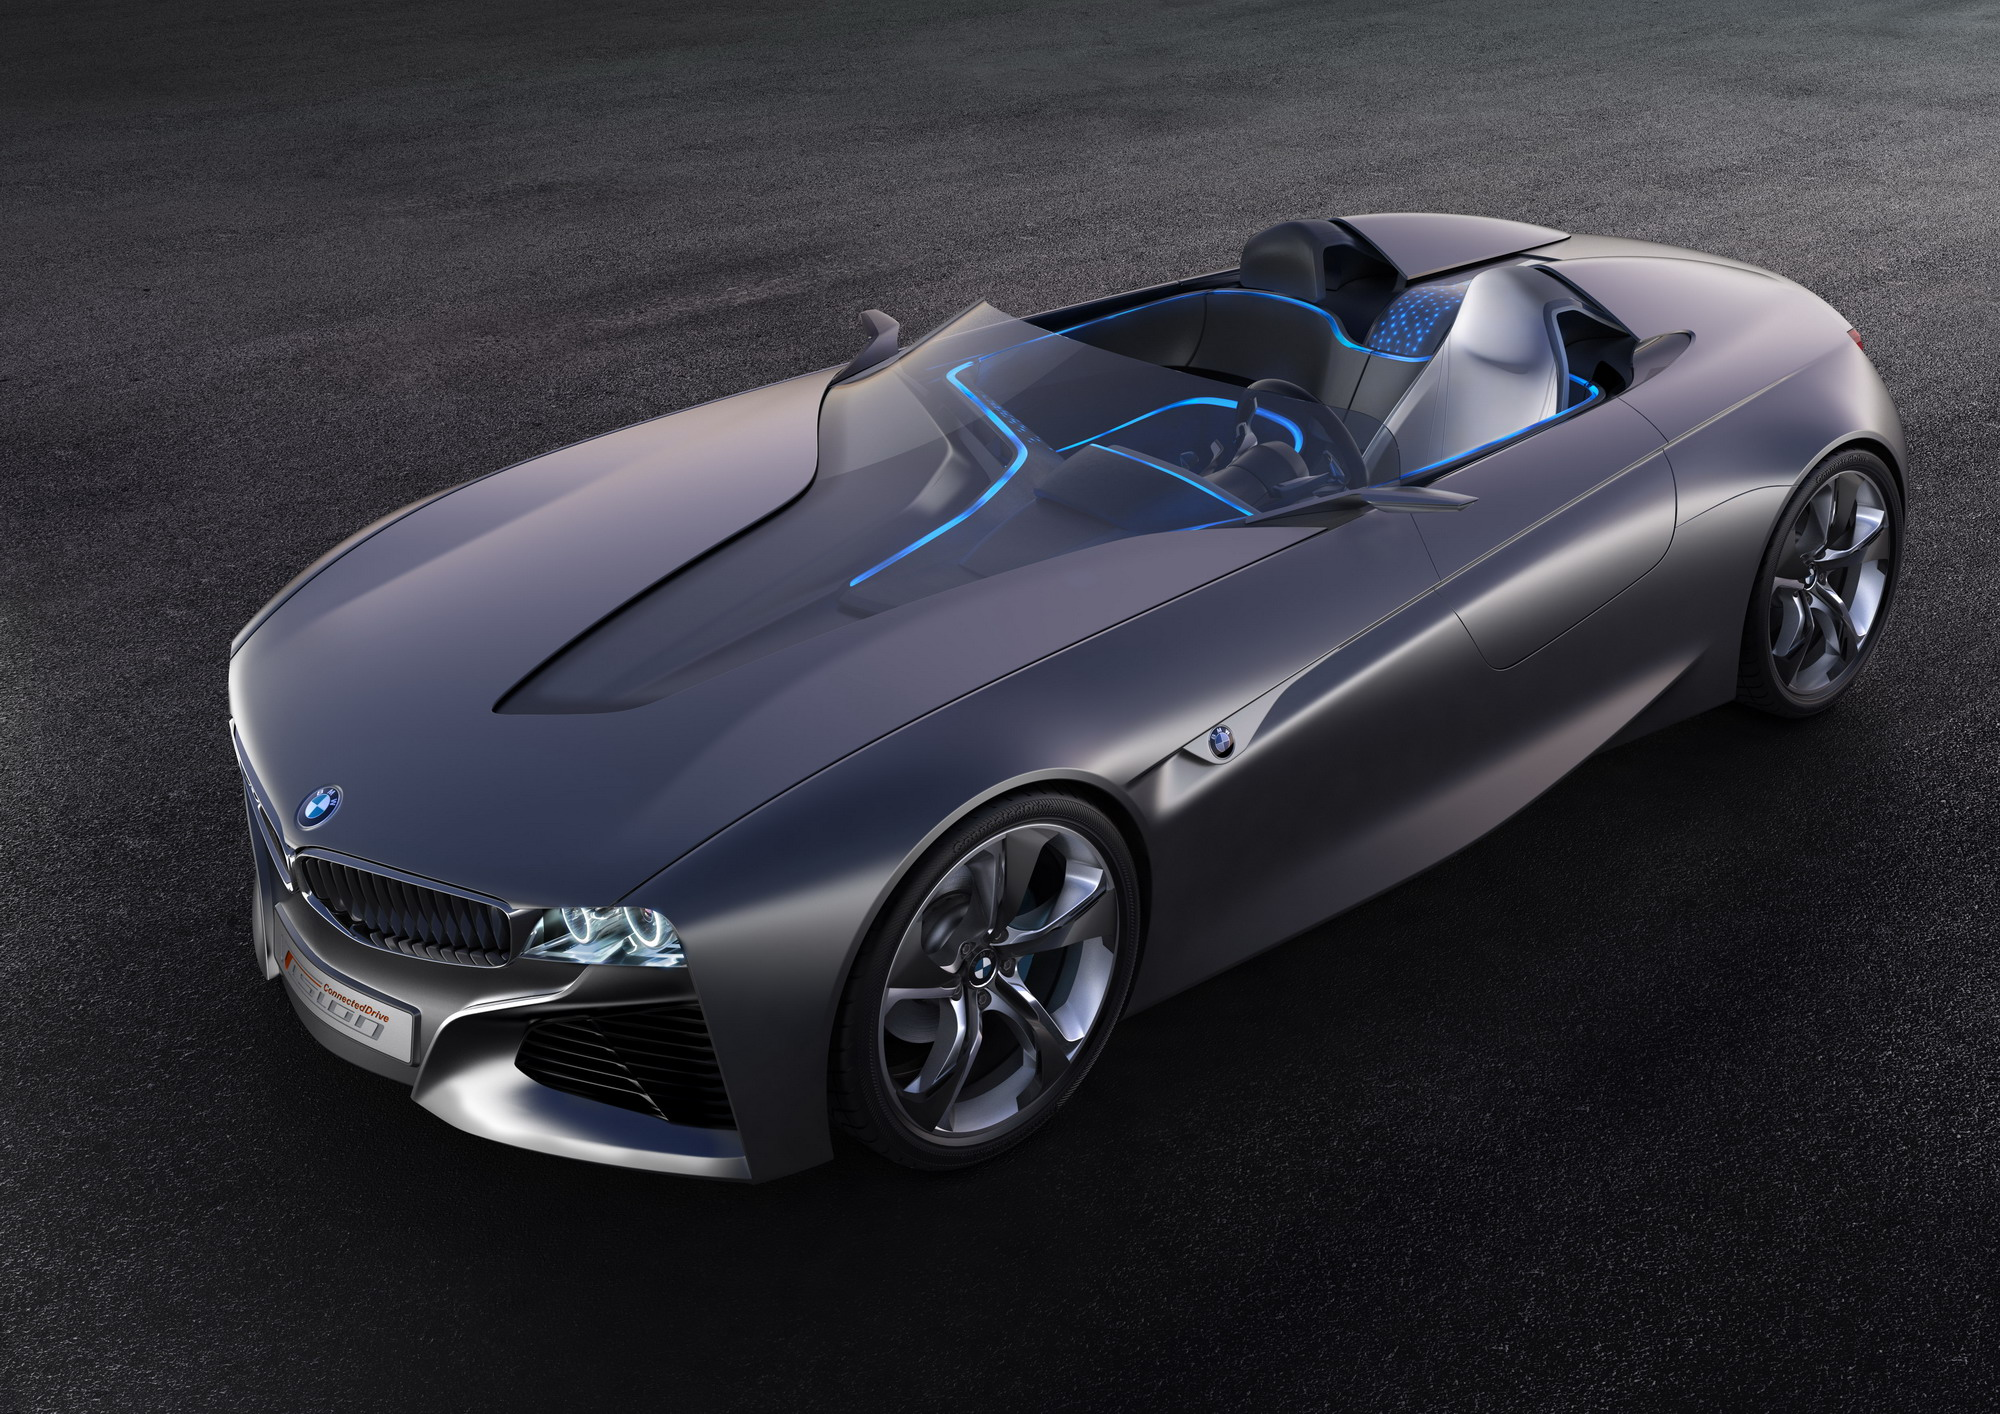 2011 Bmw Vision Connecteddrive Concept  Top Speed